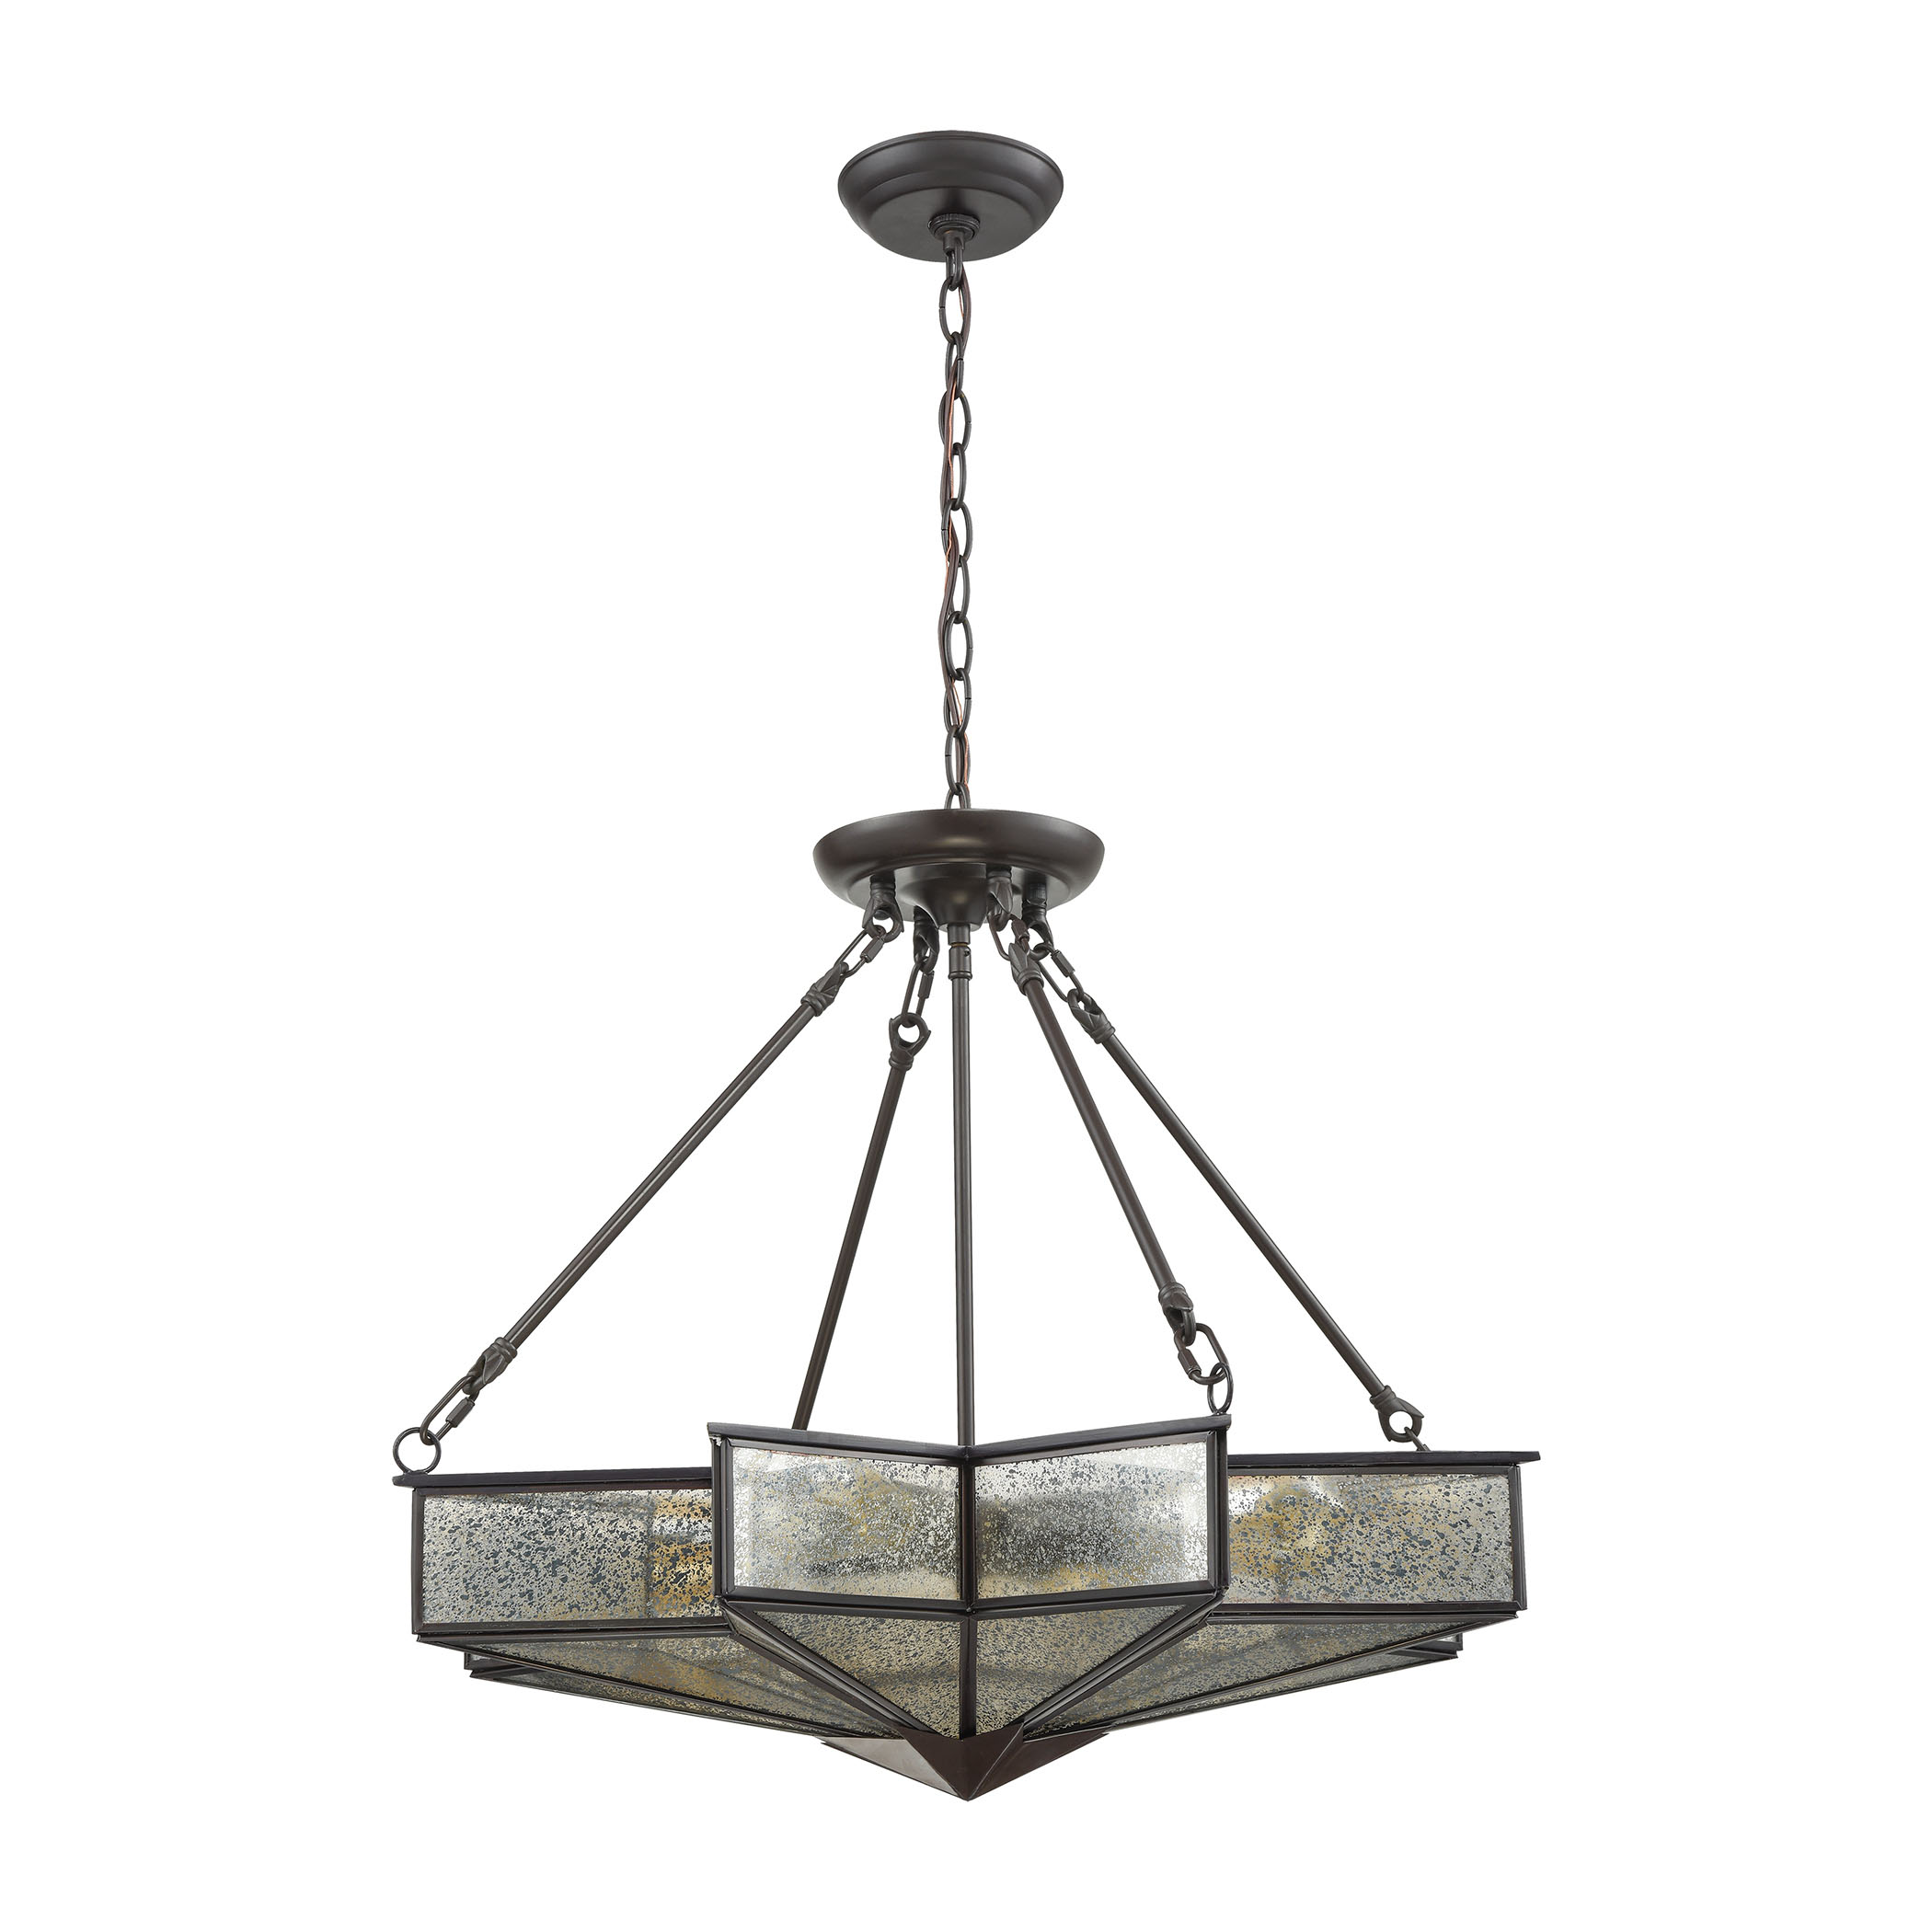 Decostar 4 Light Chandelier In Oil Rubbed Bronze By Elk